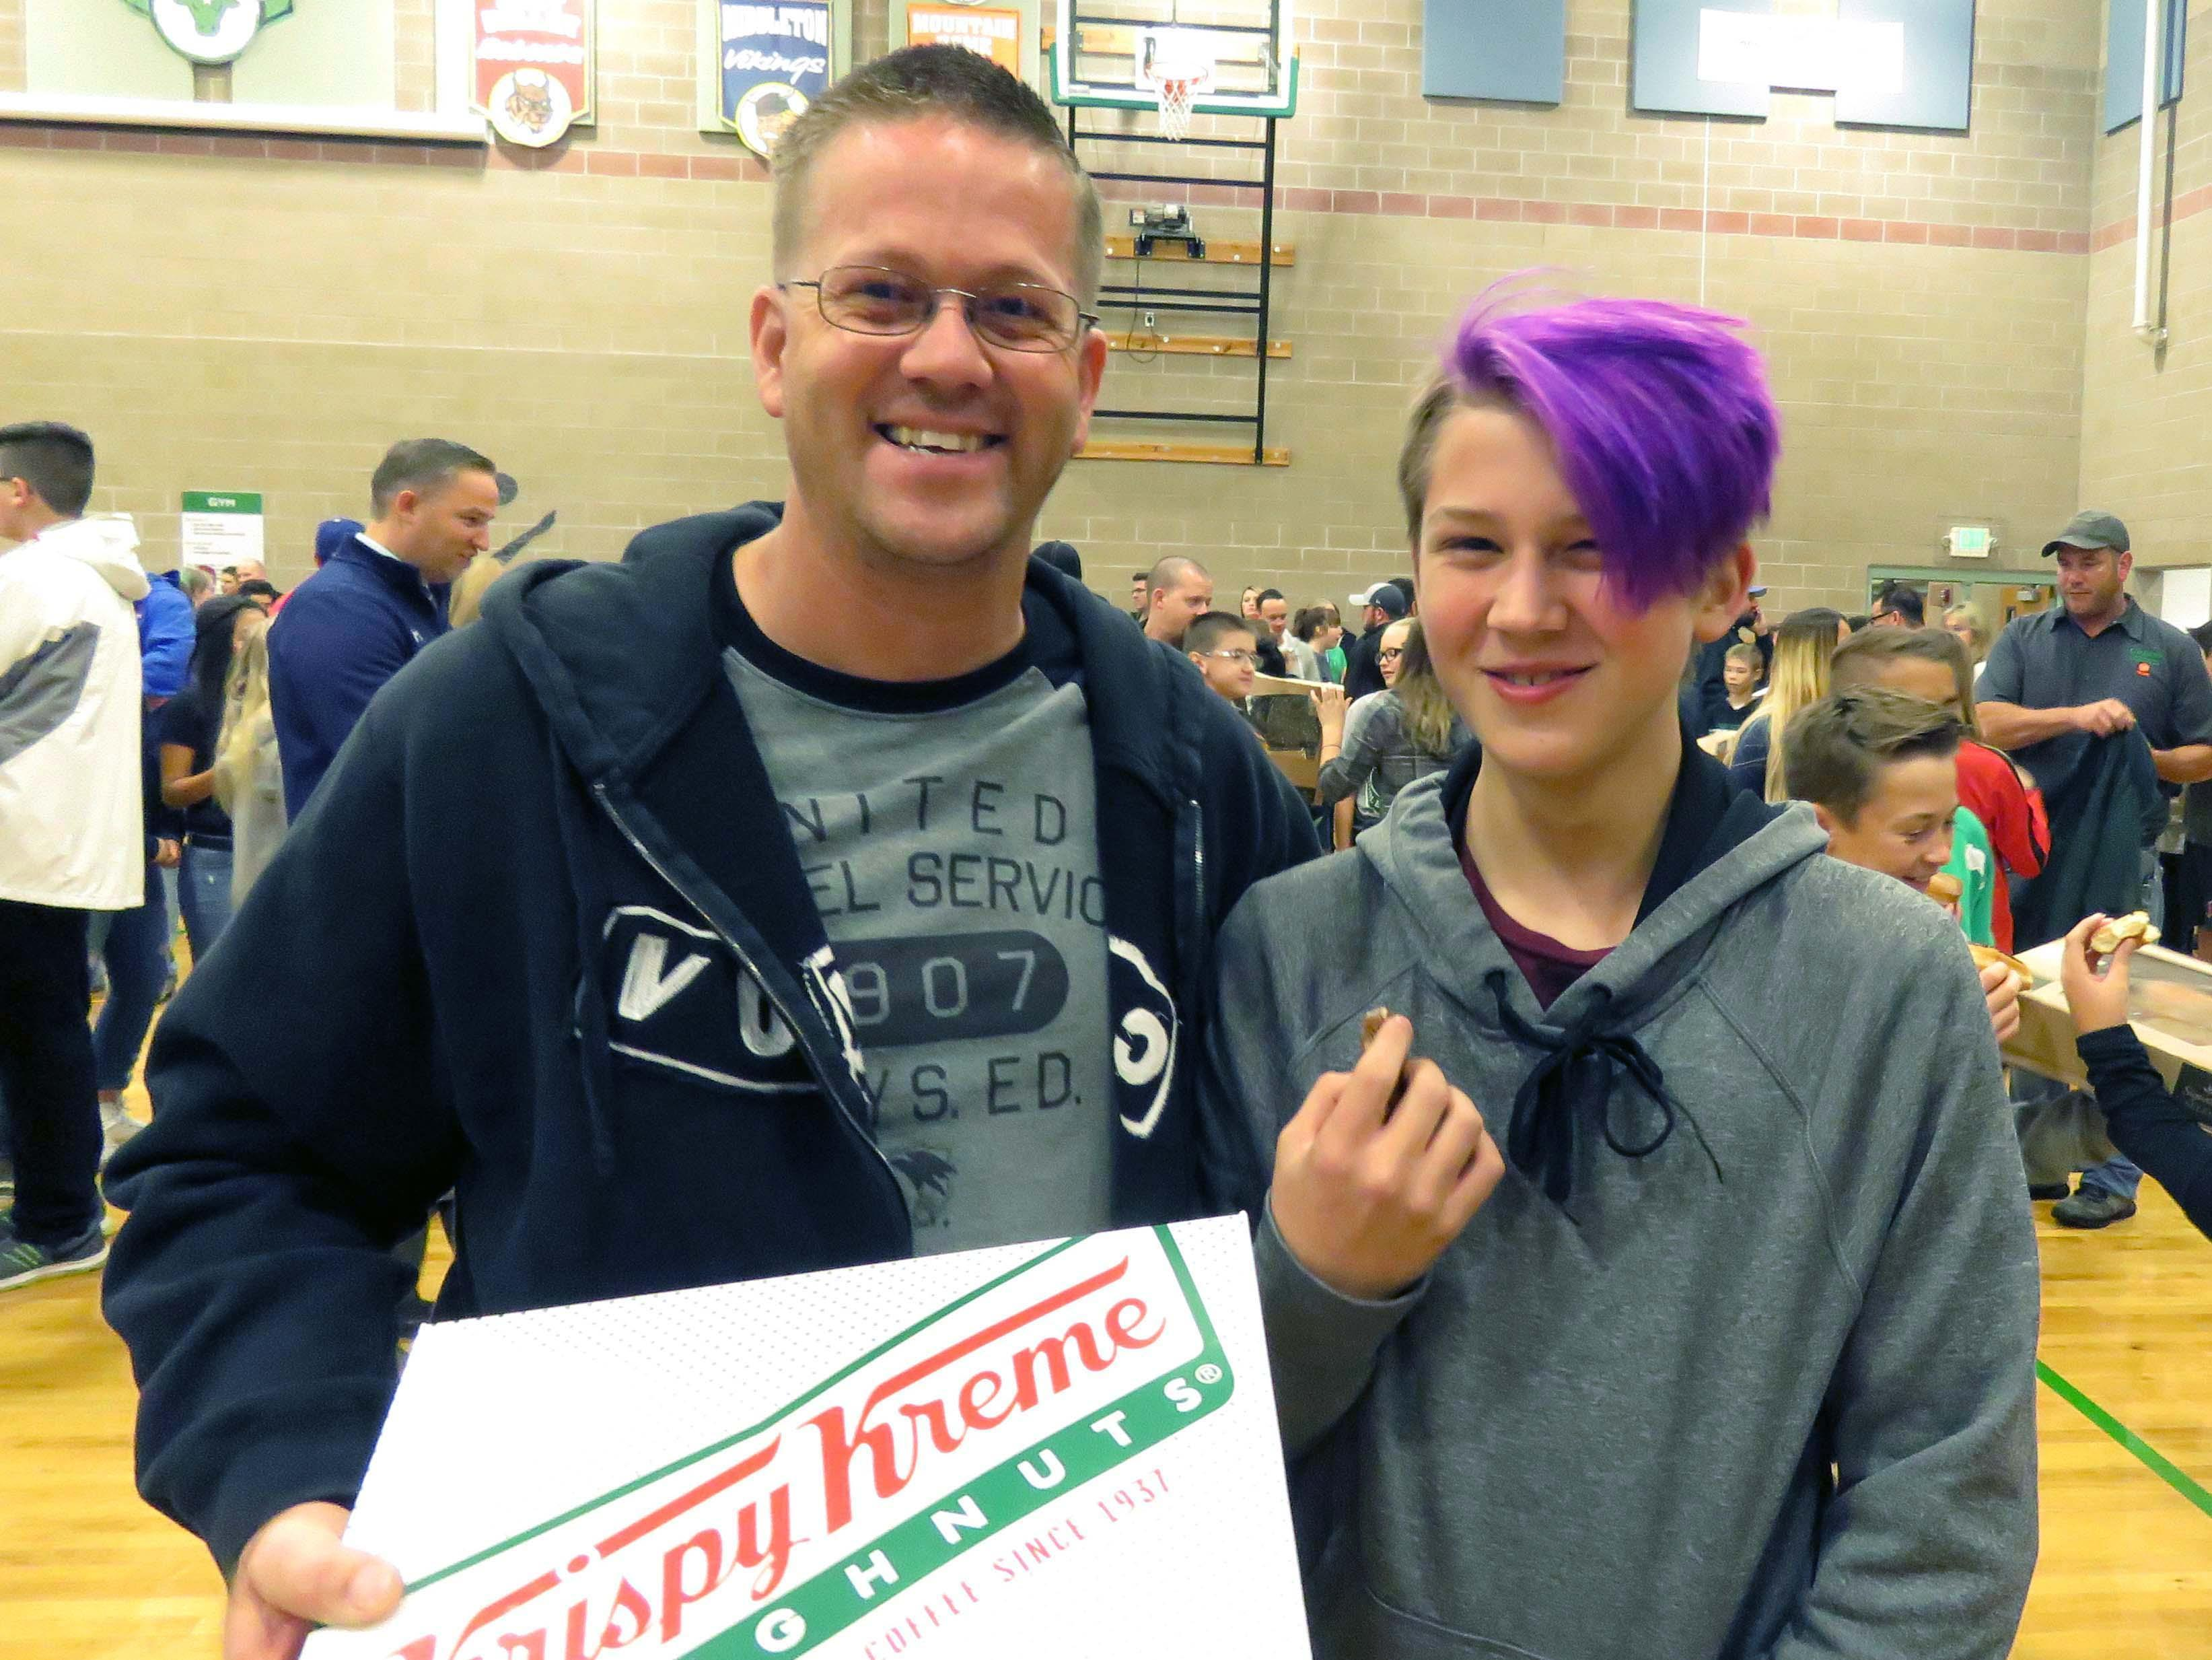 Dad and student at Dads and Donuts event